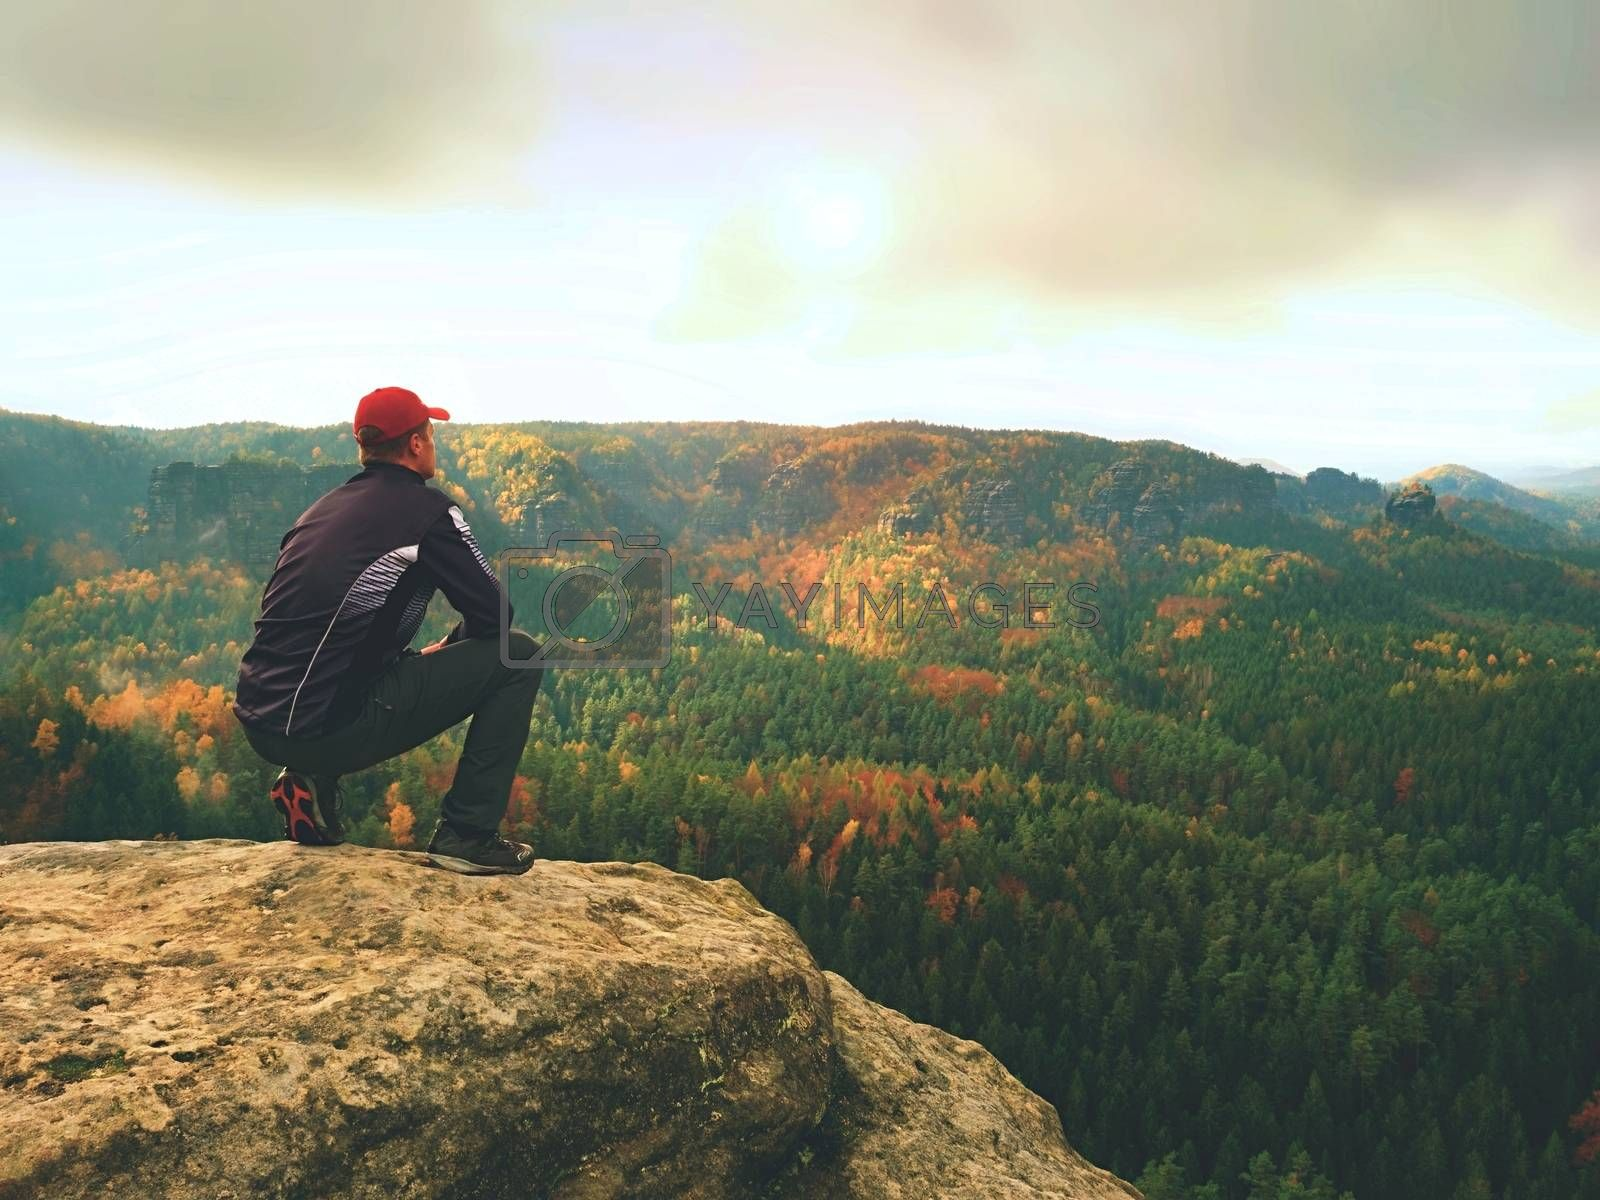 Man in black outdoor clothes sit on cracked rocky empires. Fall colorfull landcape. Melancholy misty day in sandstone mountains, mist in deep valley.